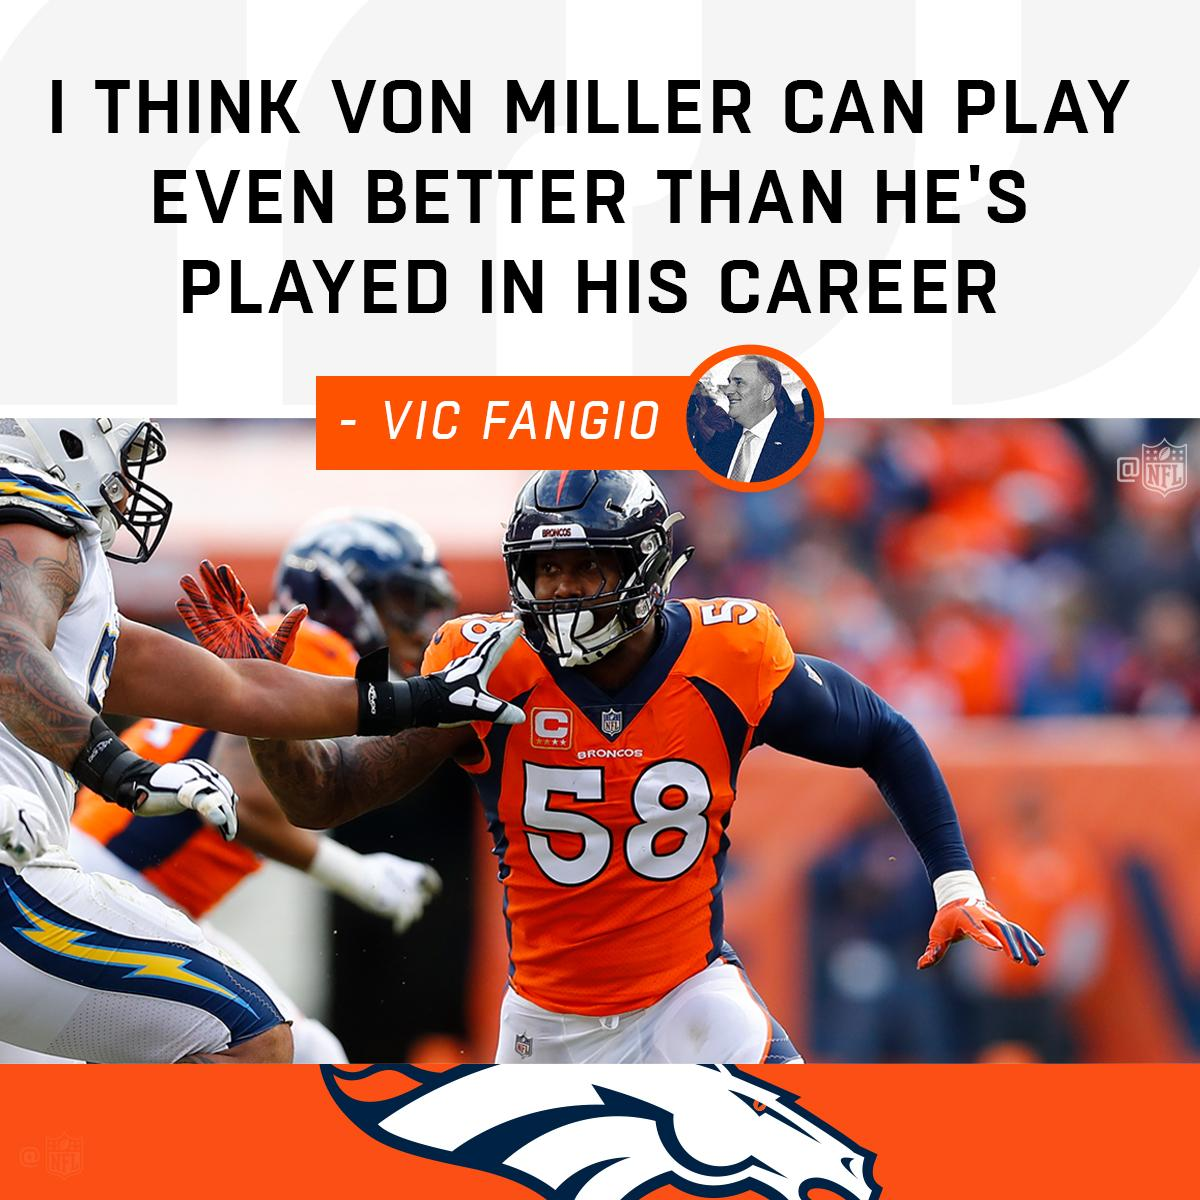 The @Broncos' new head coach could take @VonMiller to new levels: https://t.co/yawyCELEog https://t.co/sBFs2qSQrz